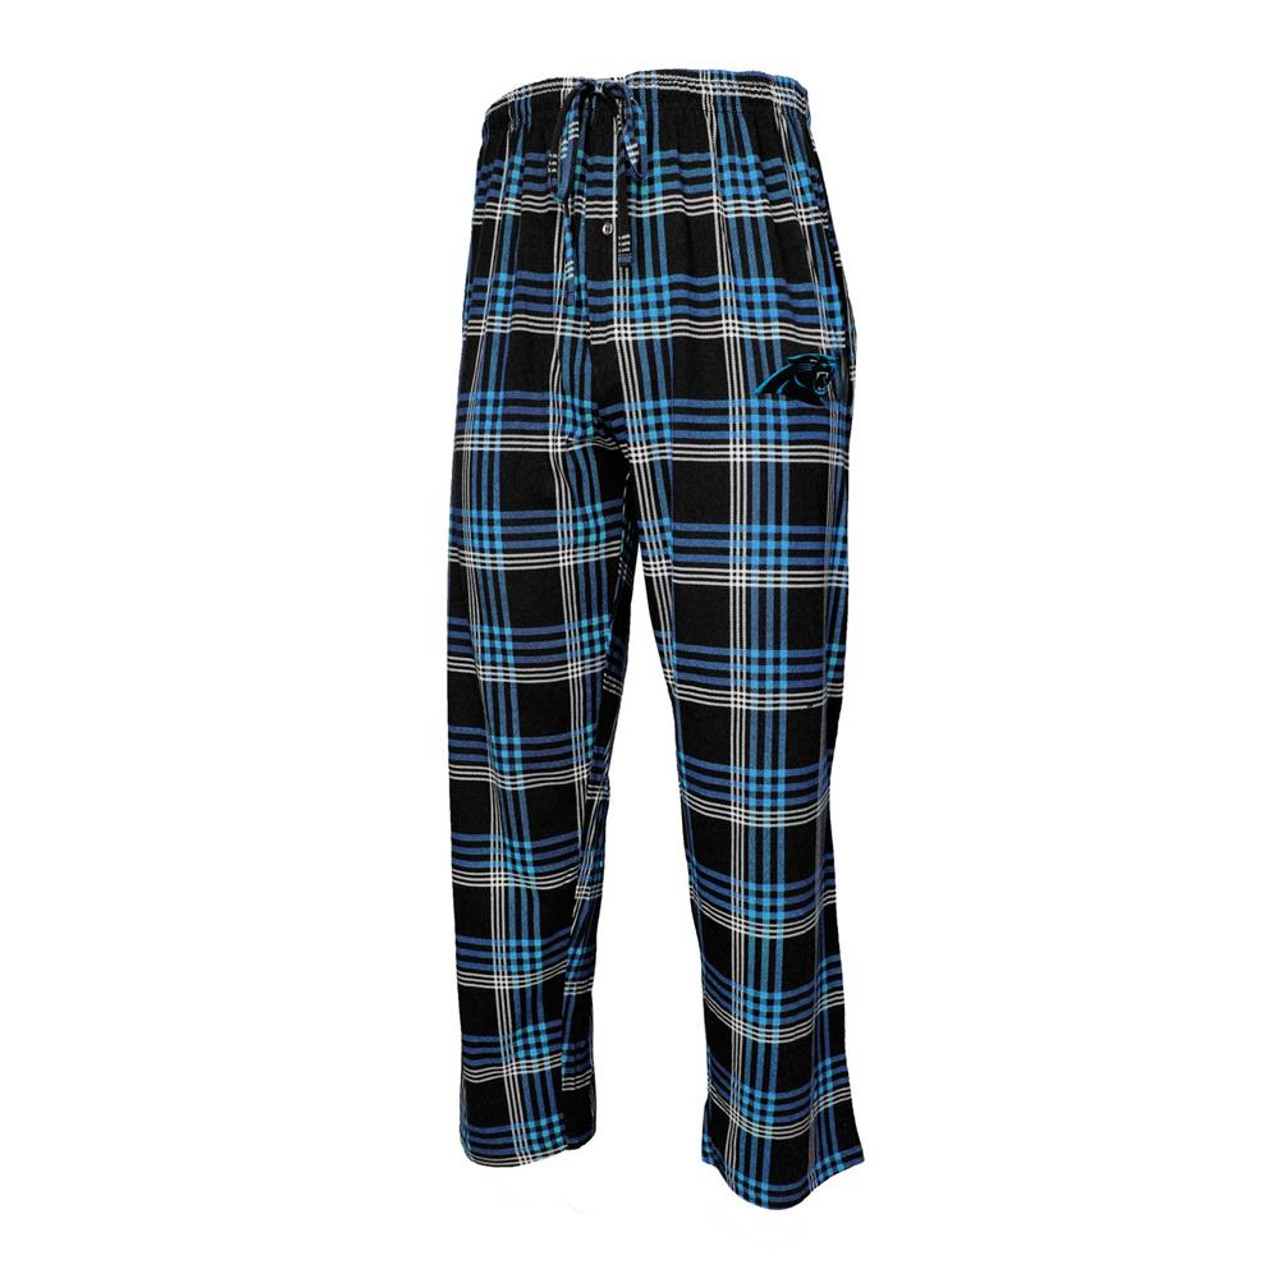 Men's Playoff Plaid Carolina Panthers Pajama Pants